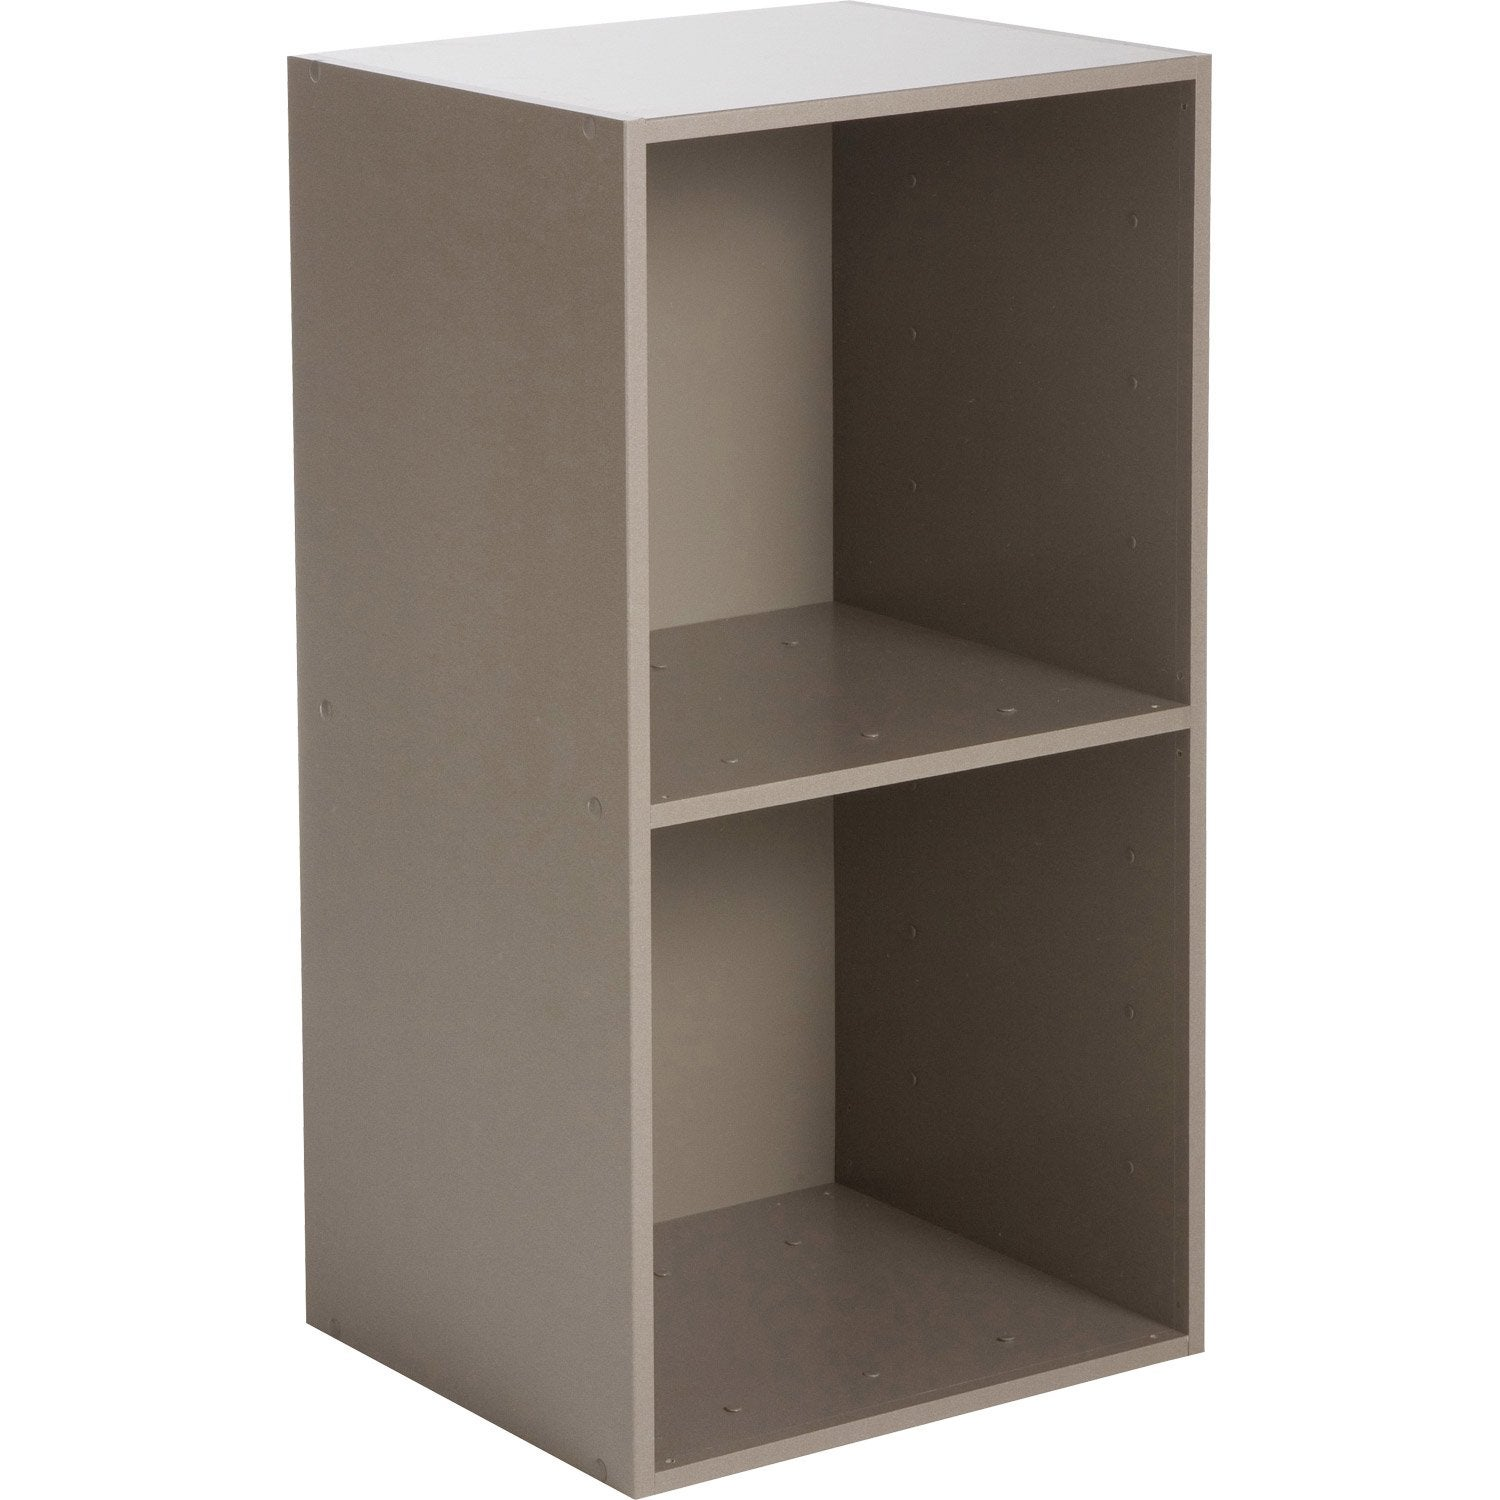 Etag re 2 cases multikaz taupe x x - Etagere chaussure leroy merlin ...